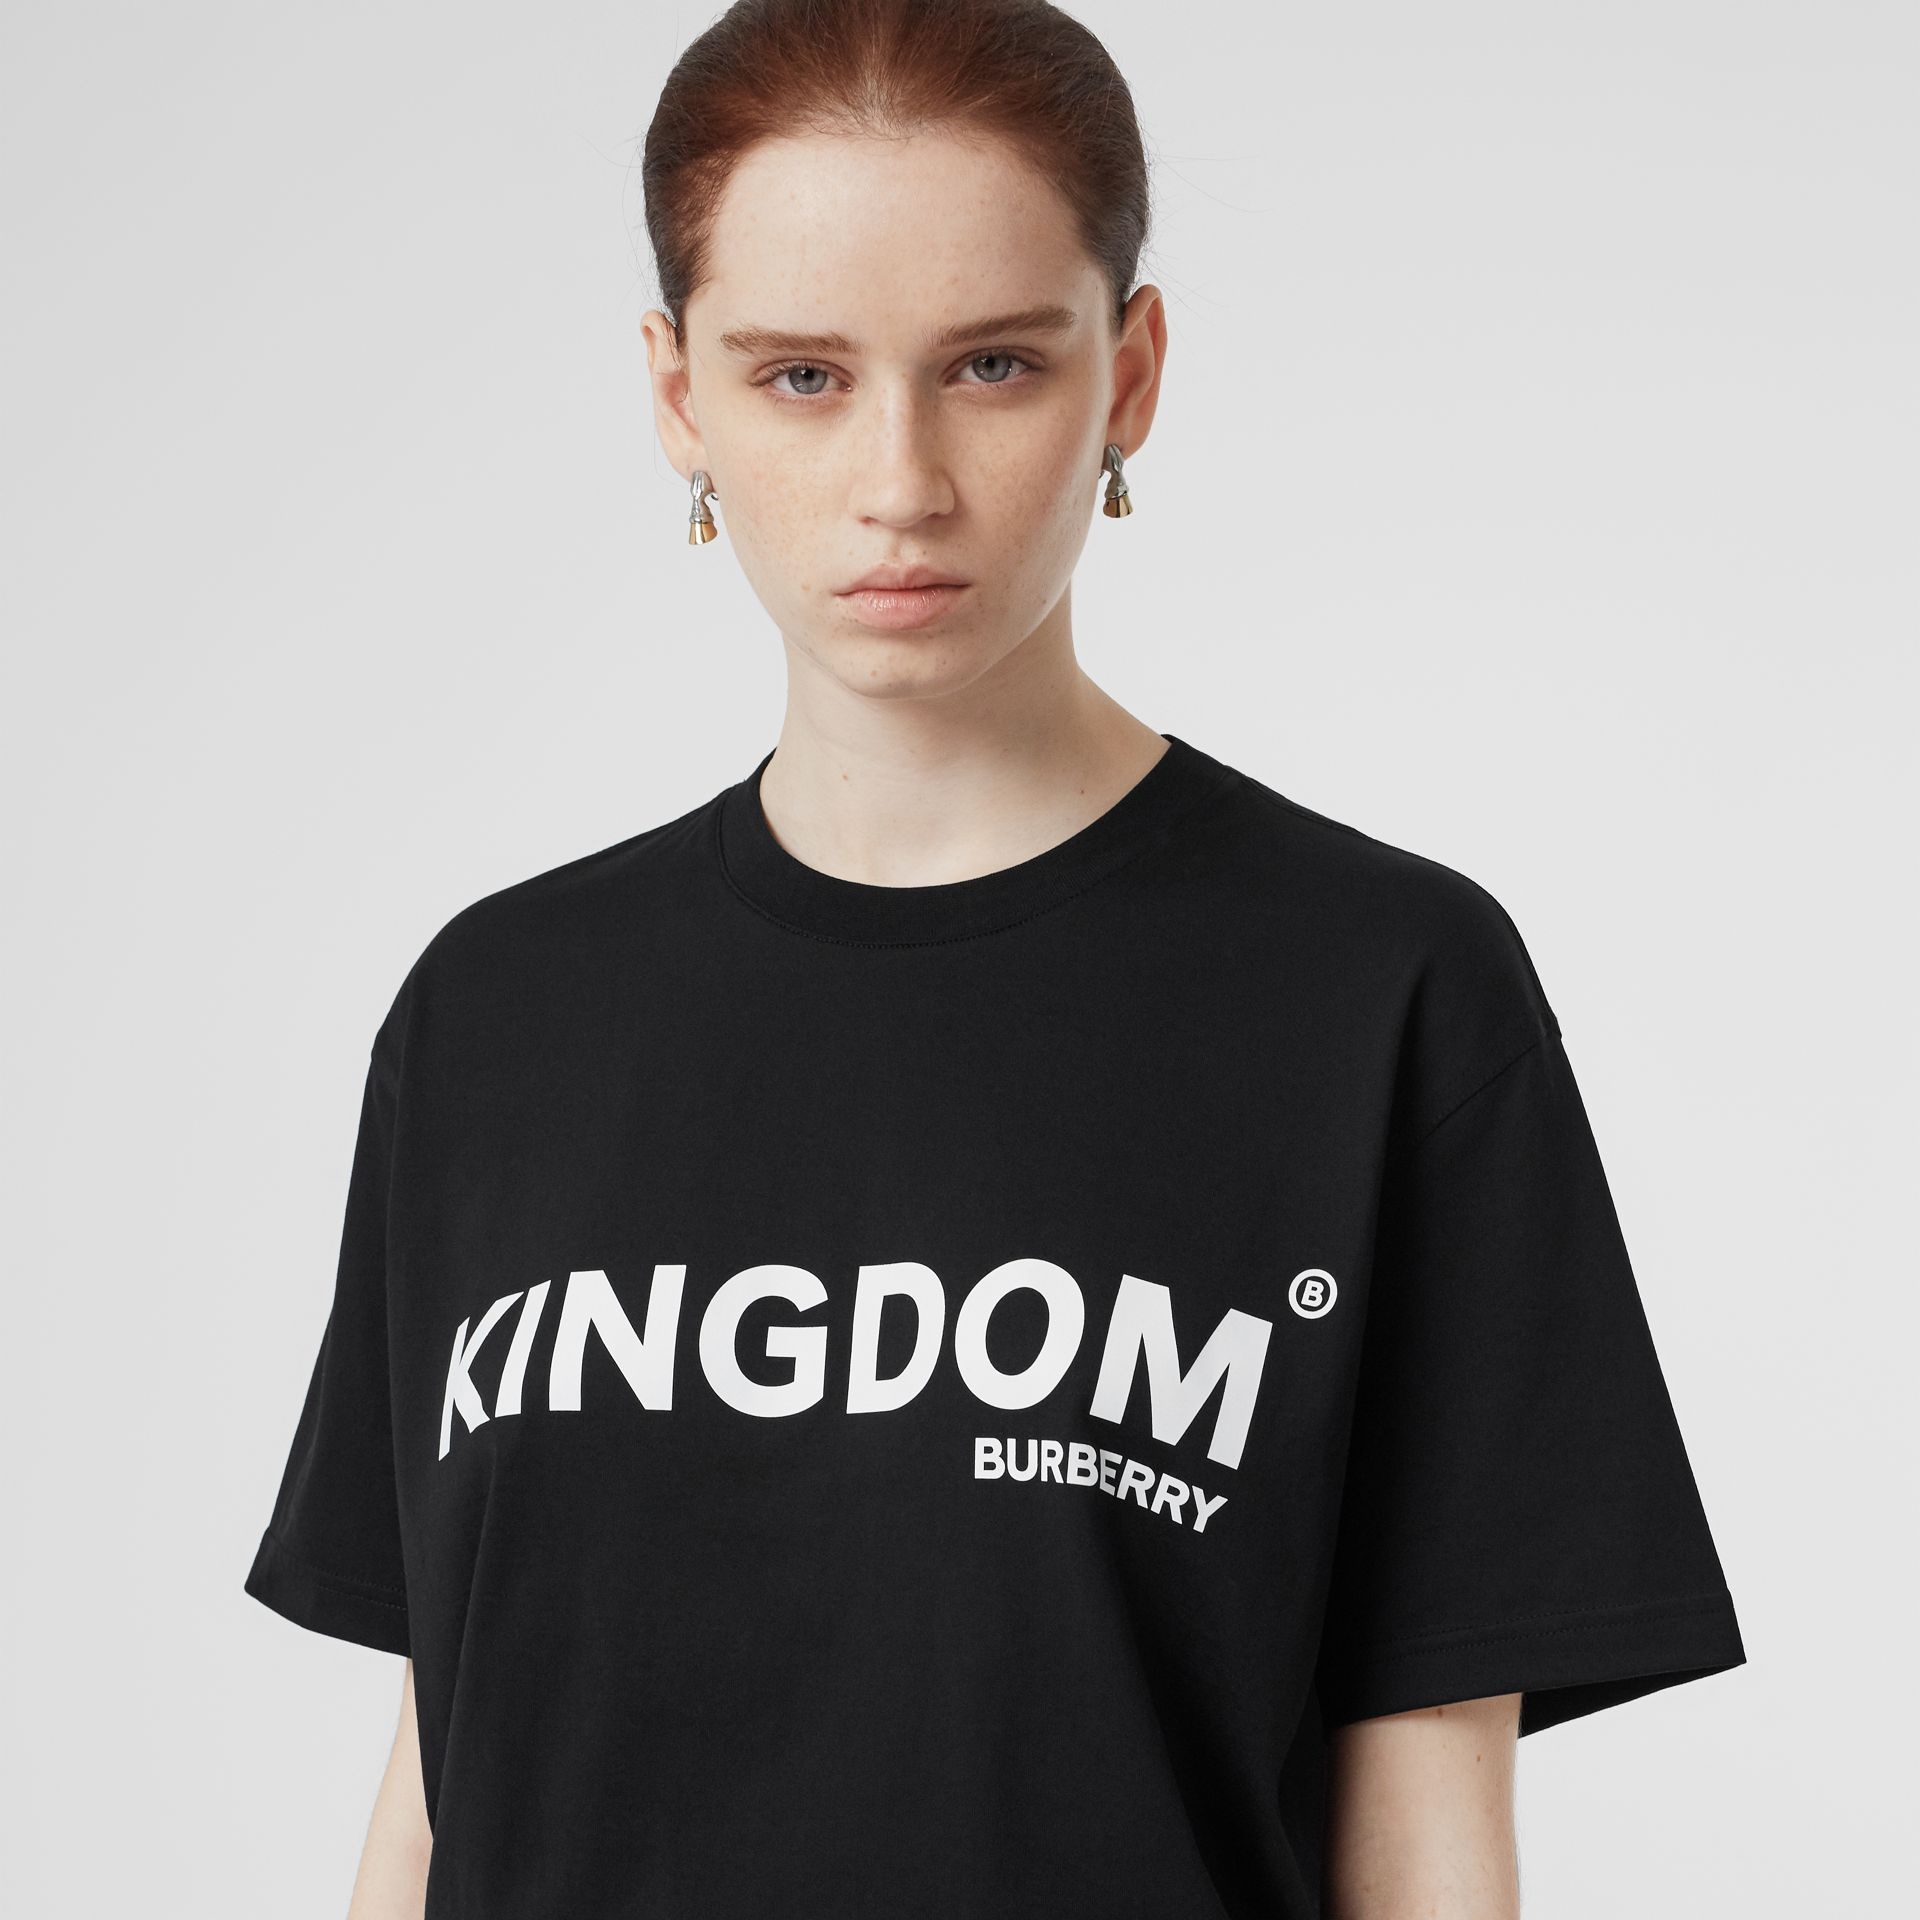 Kingdom Print Cotton Oversized T-shirt in Black - Women | Burberry Canada - gallery image 1